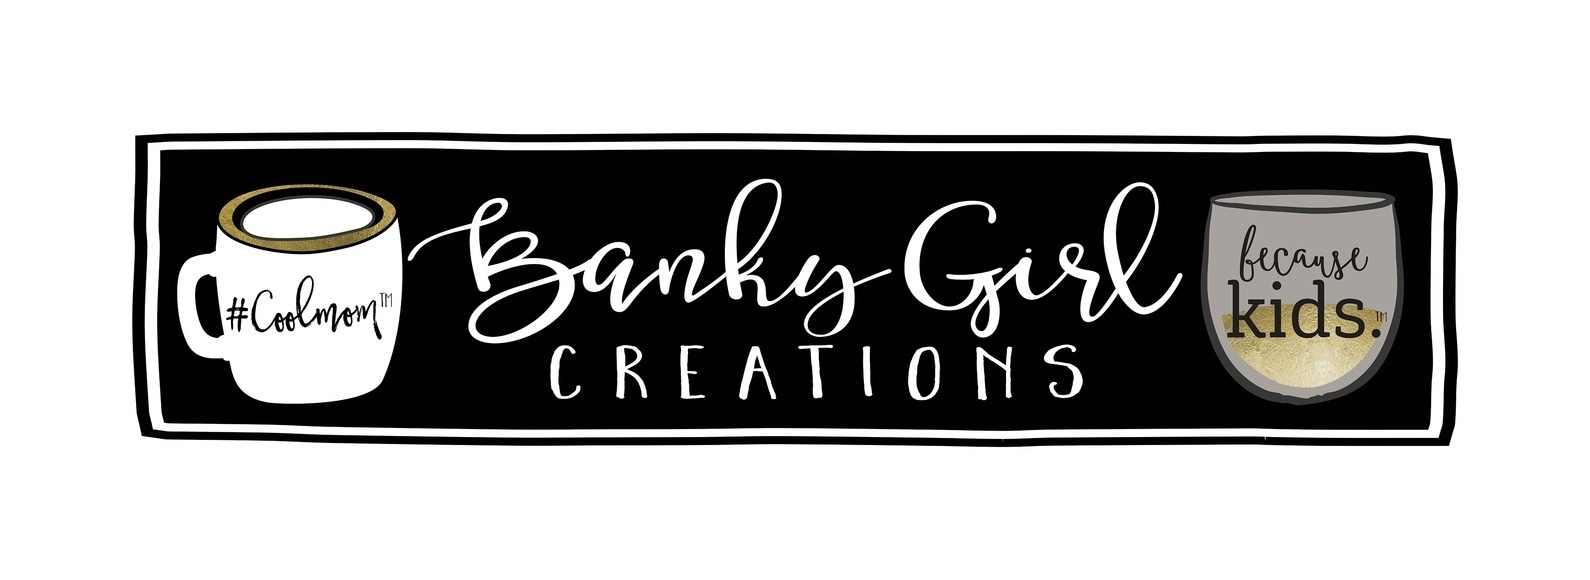 BankyGirlCreations Coupons & Promo codes